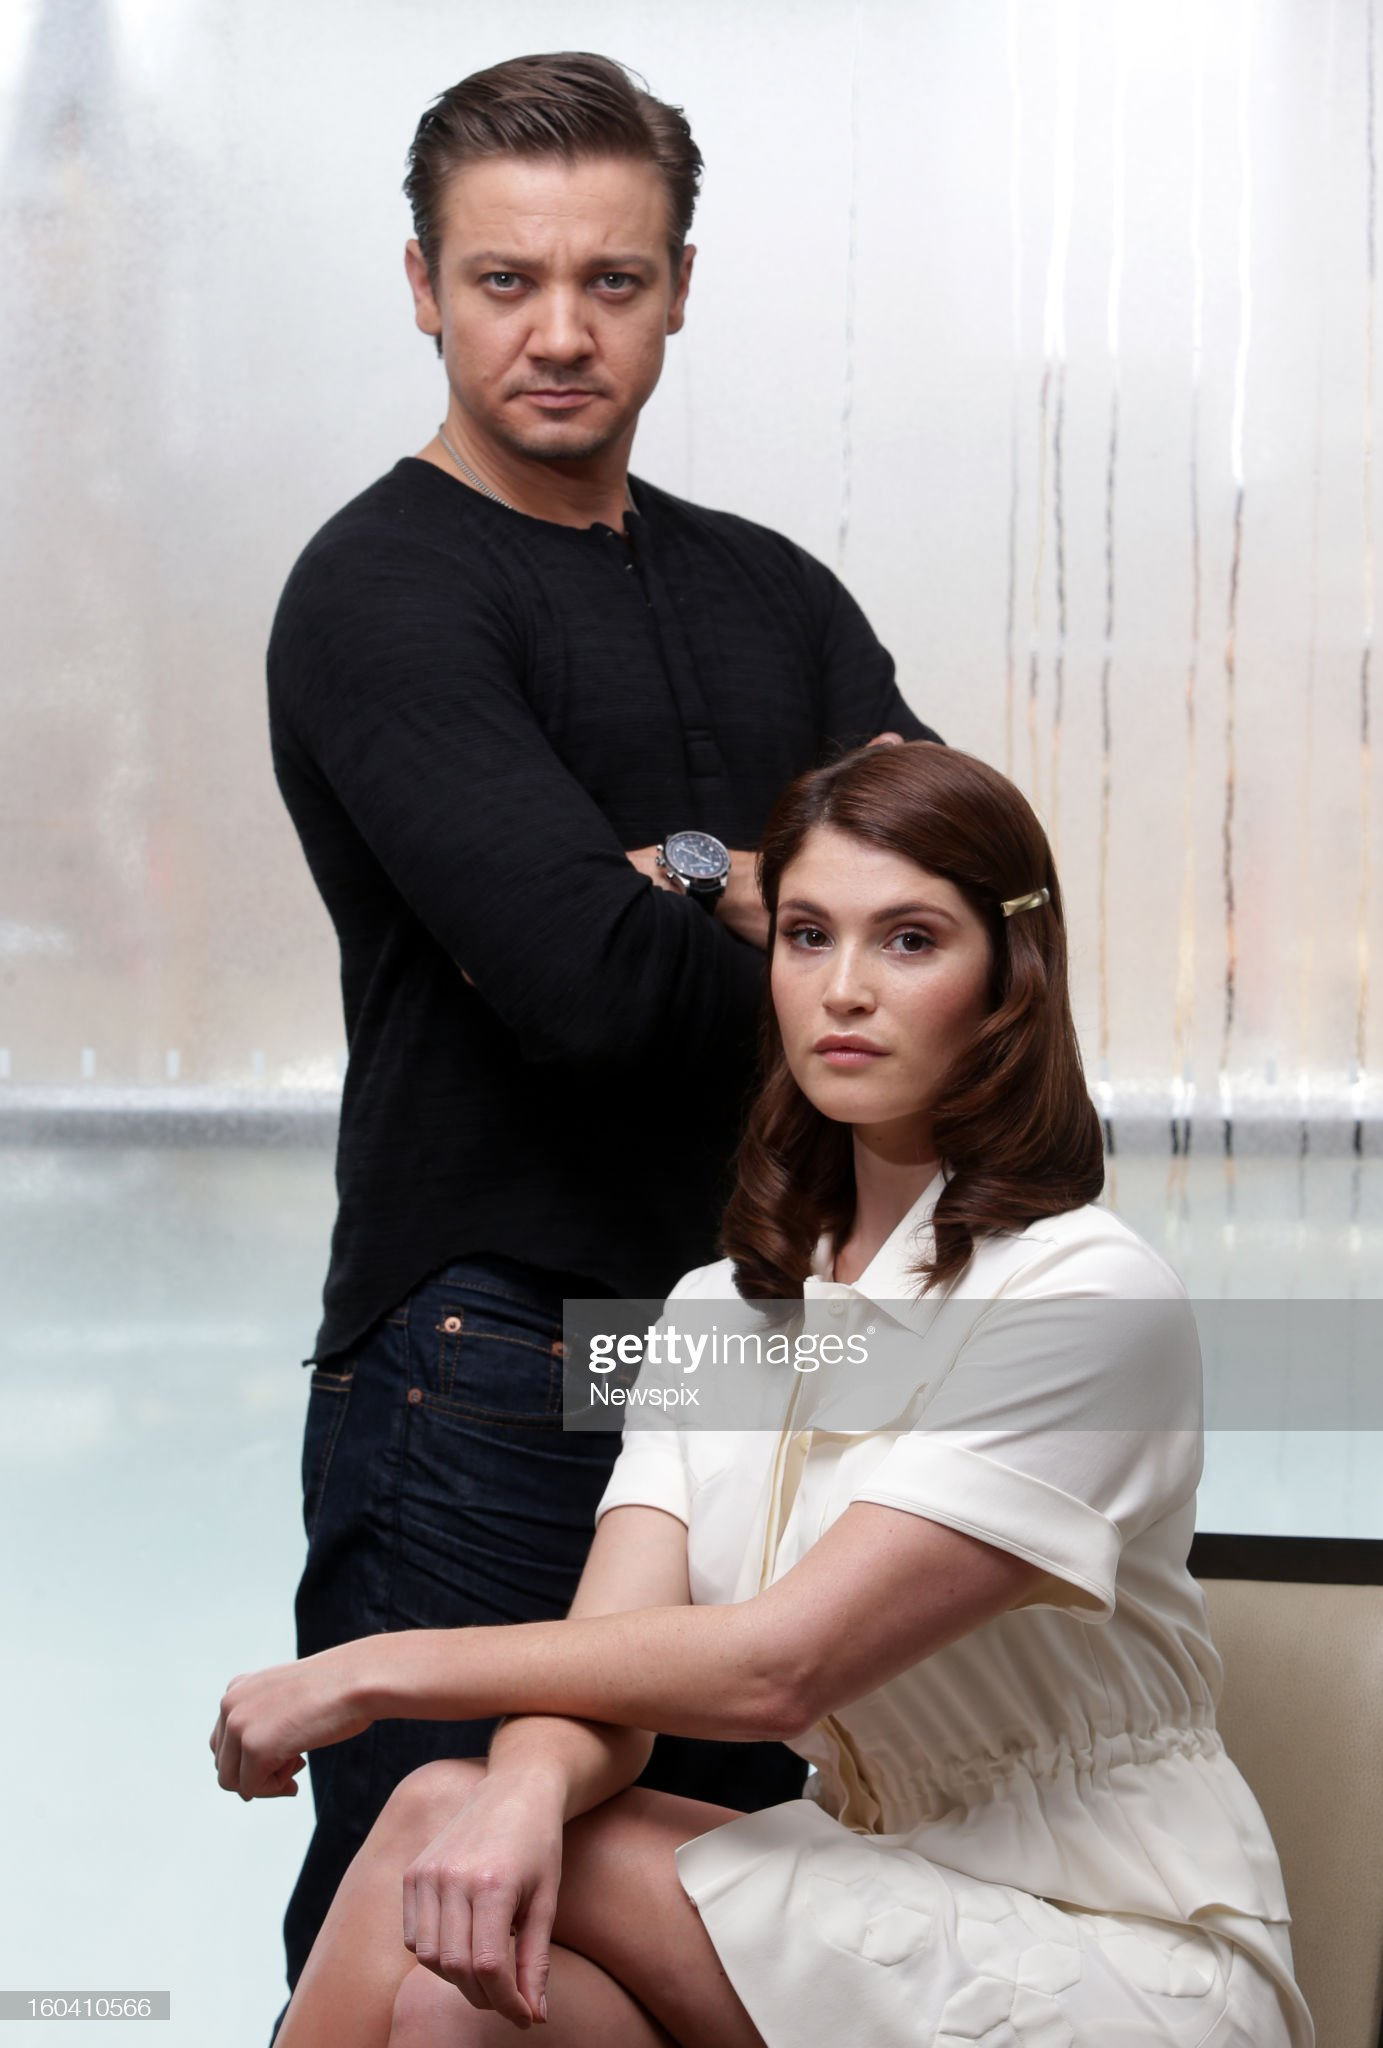 actors-jeremy-renner-and-gemma-arterton-pose-during-a-photo-shoot-to-picture-id160410566